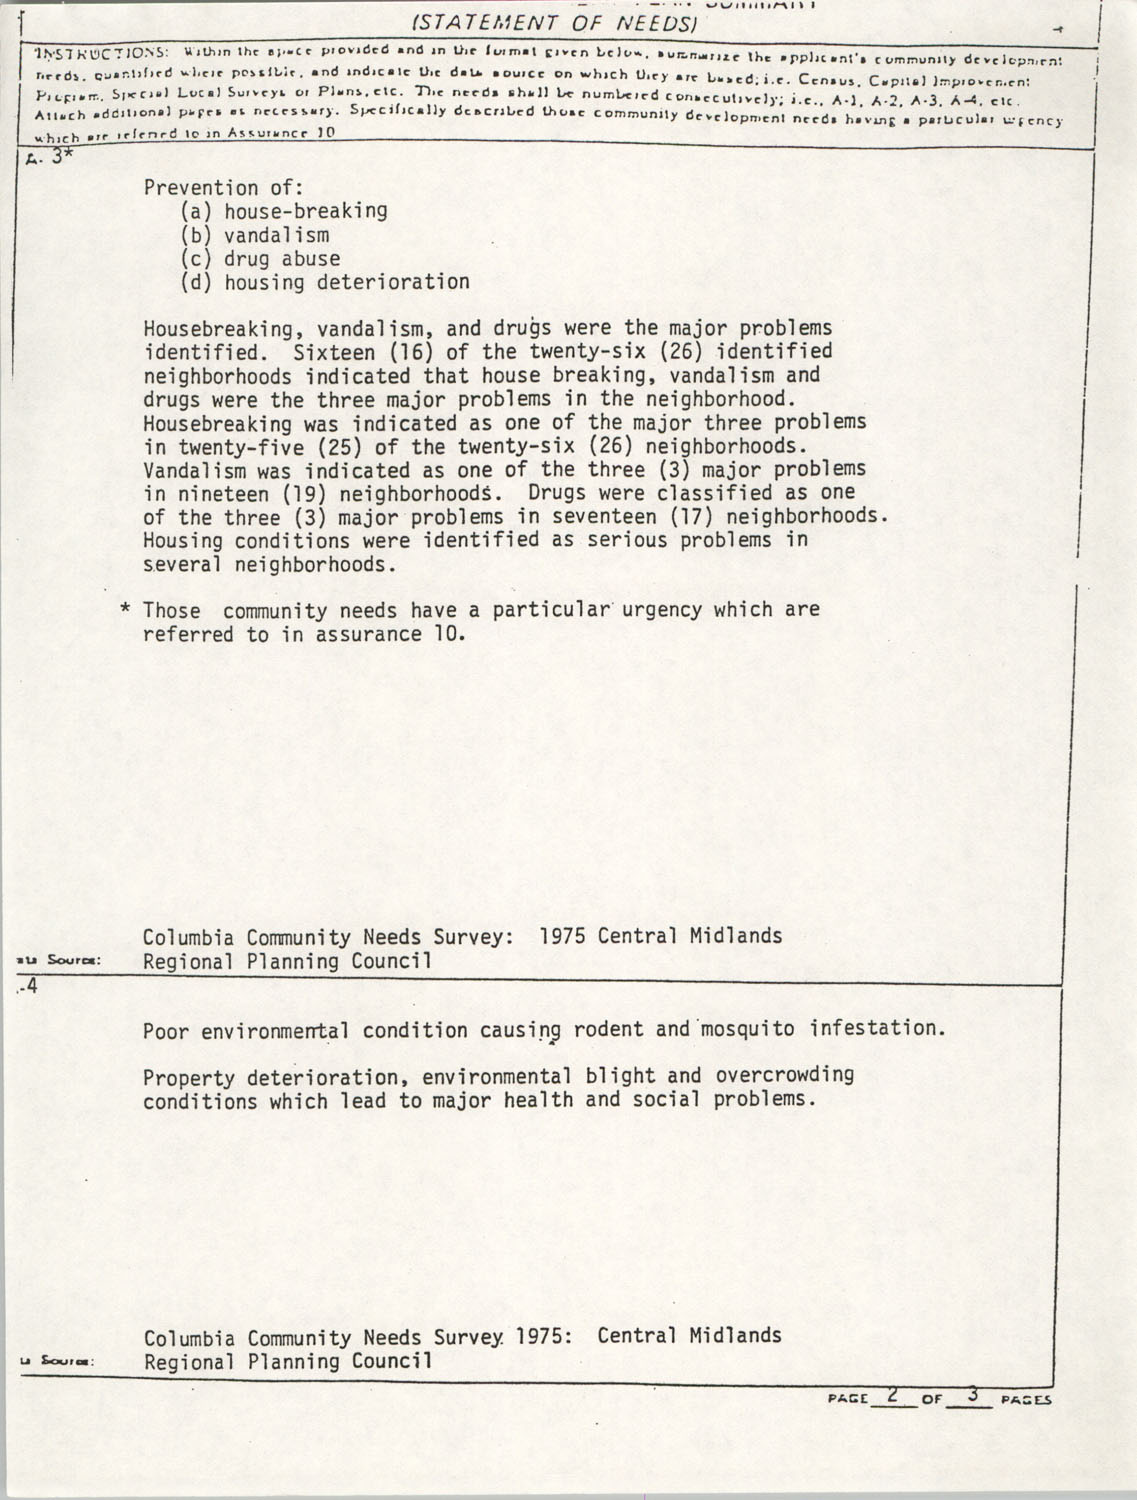 Community Development Act Columbia, South Carolina Materials, South Carolina,  Page 3